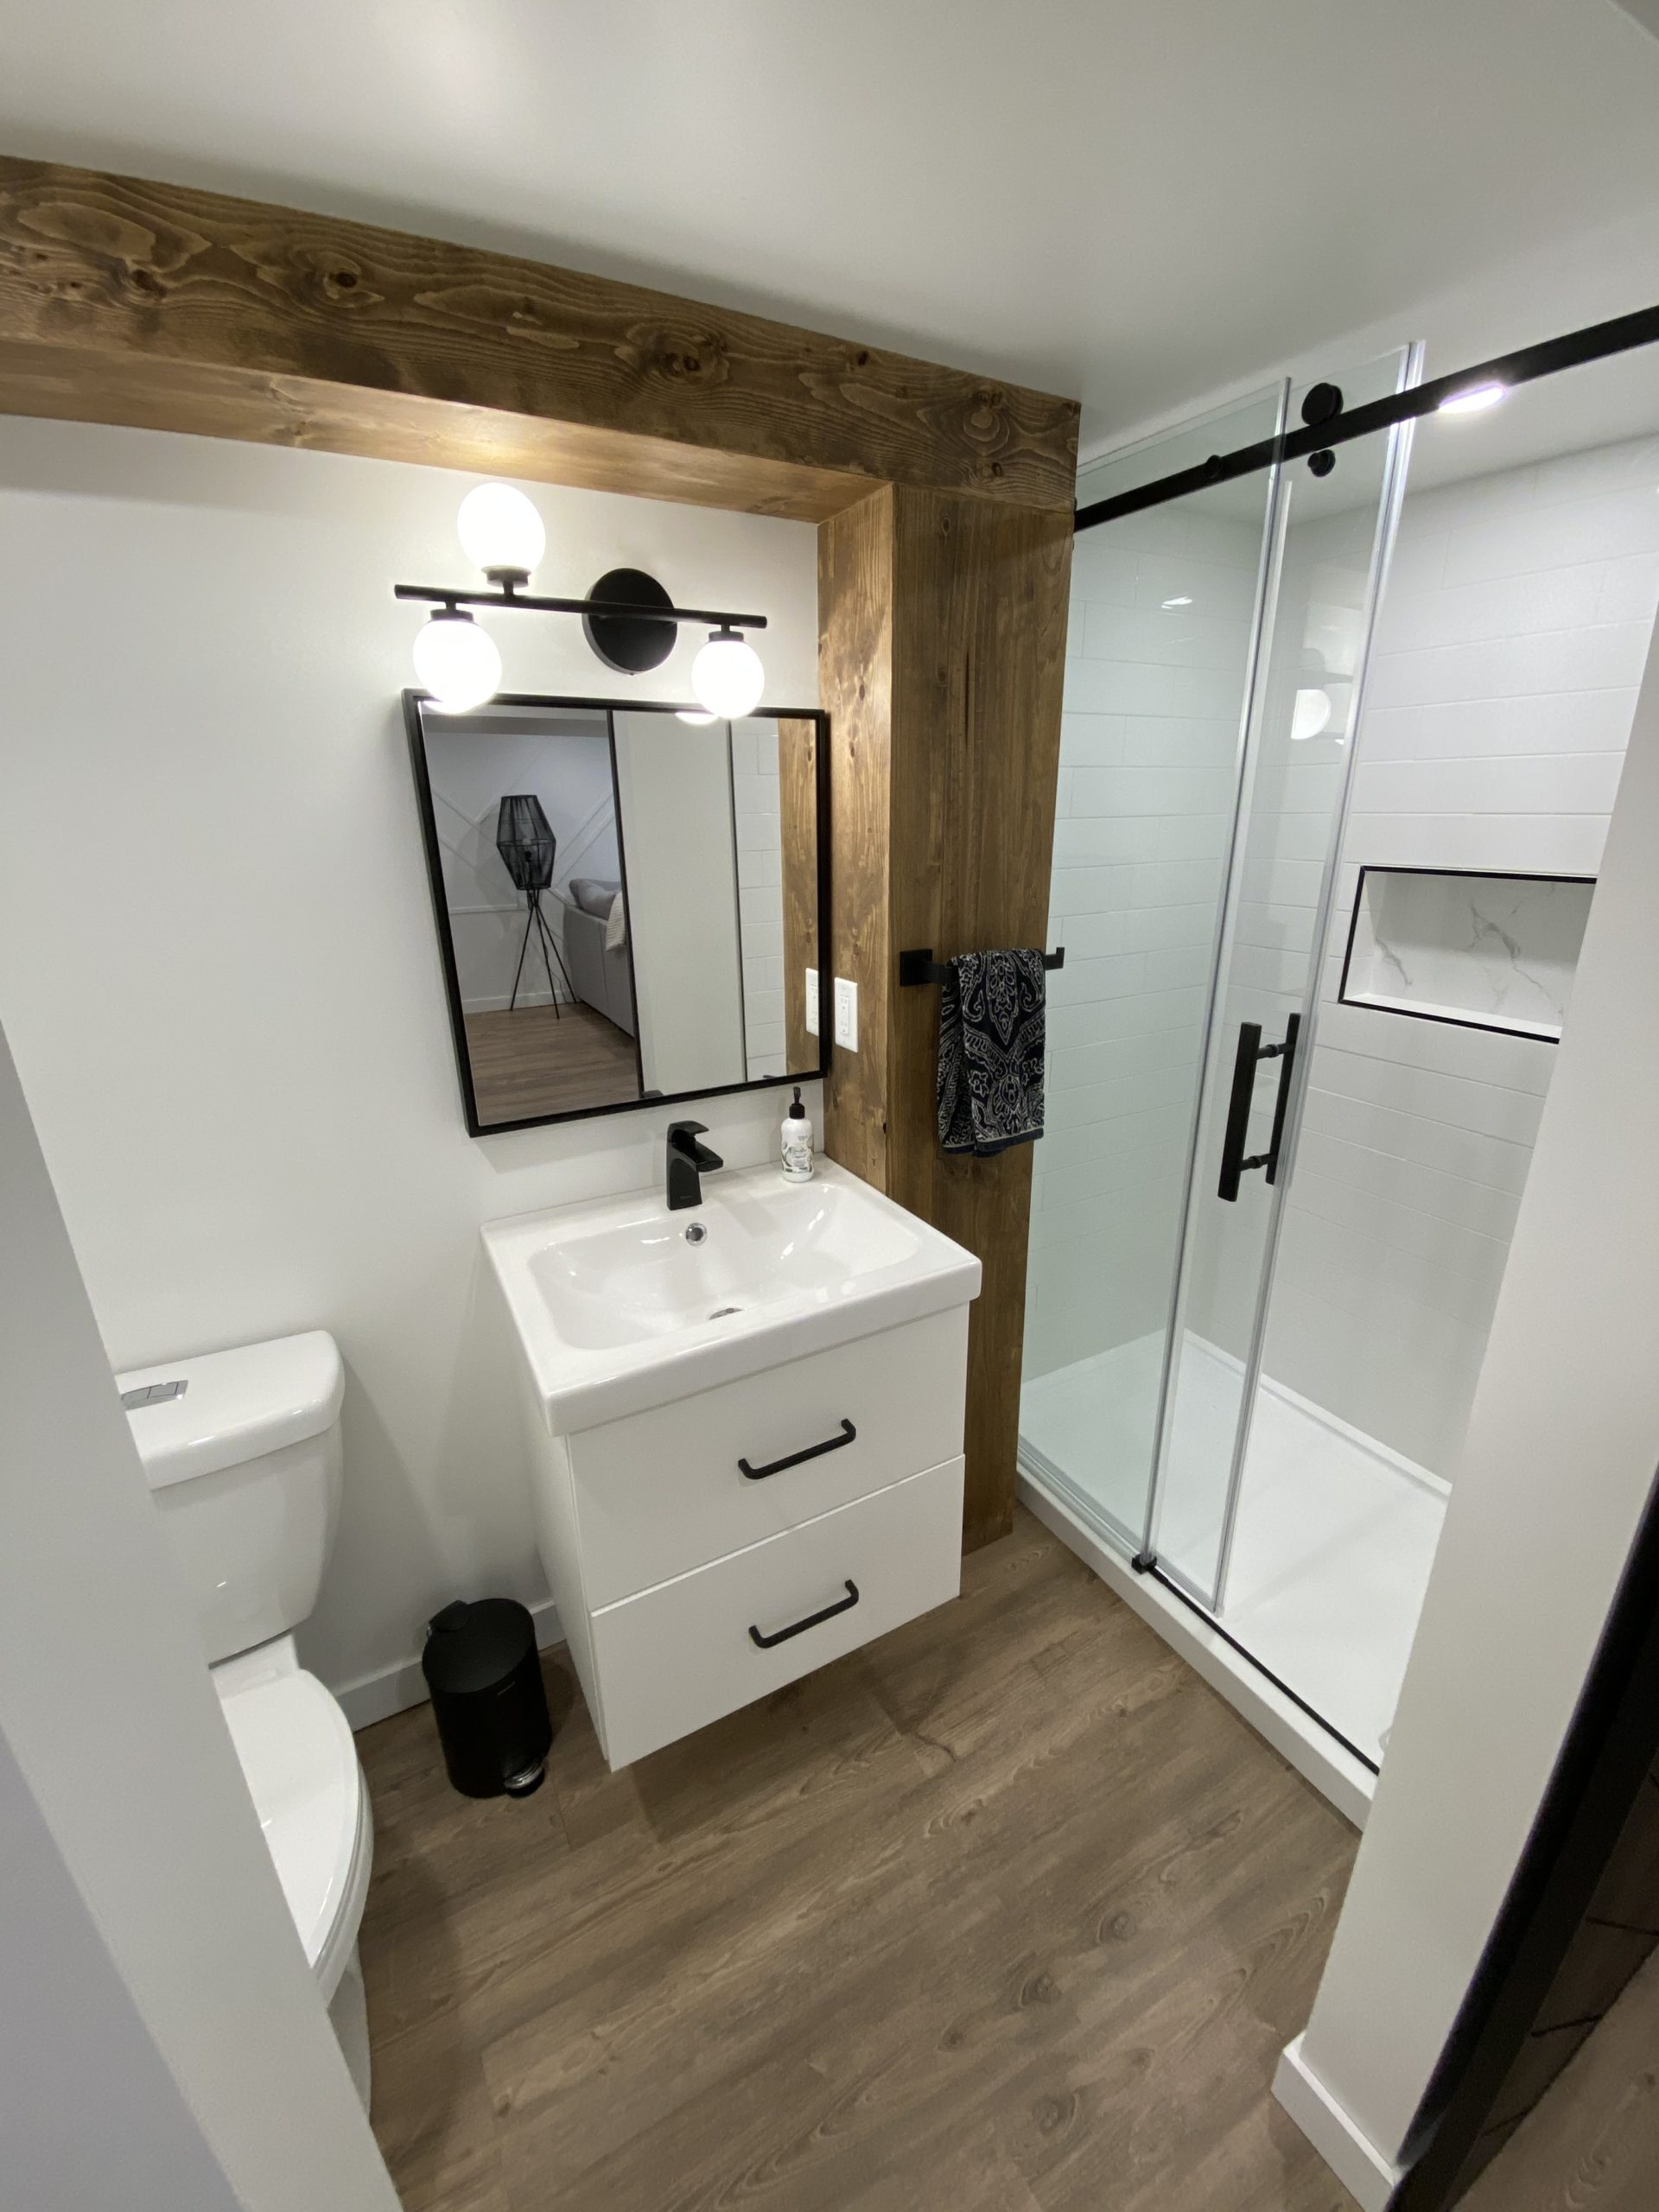 white and black basement bathroom with wood accent covering plumbing conduit